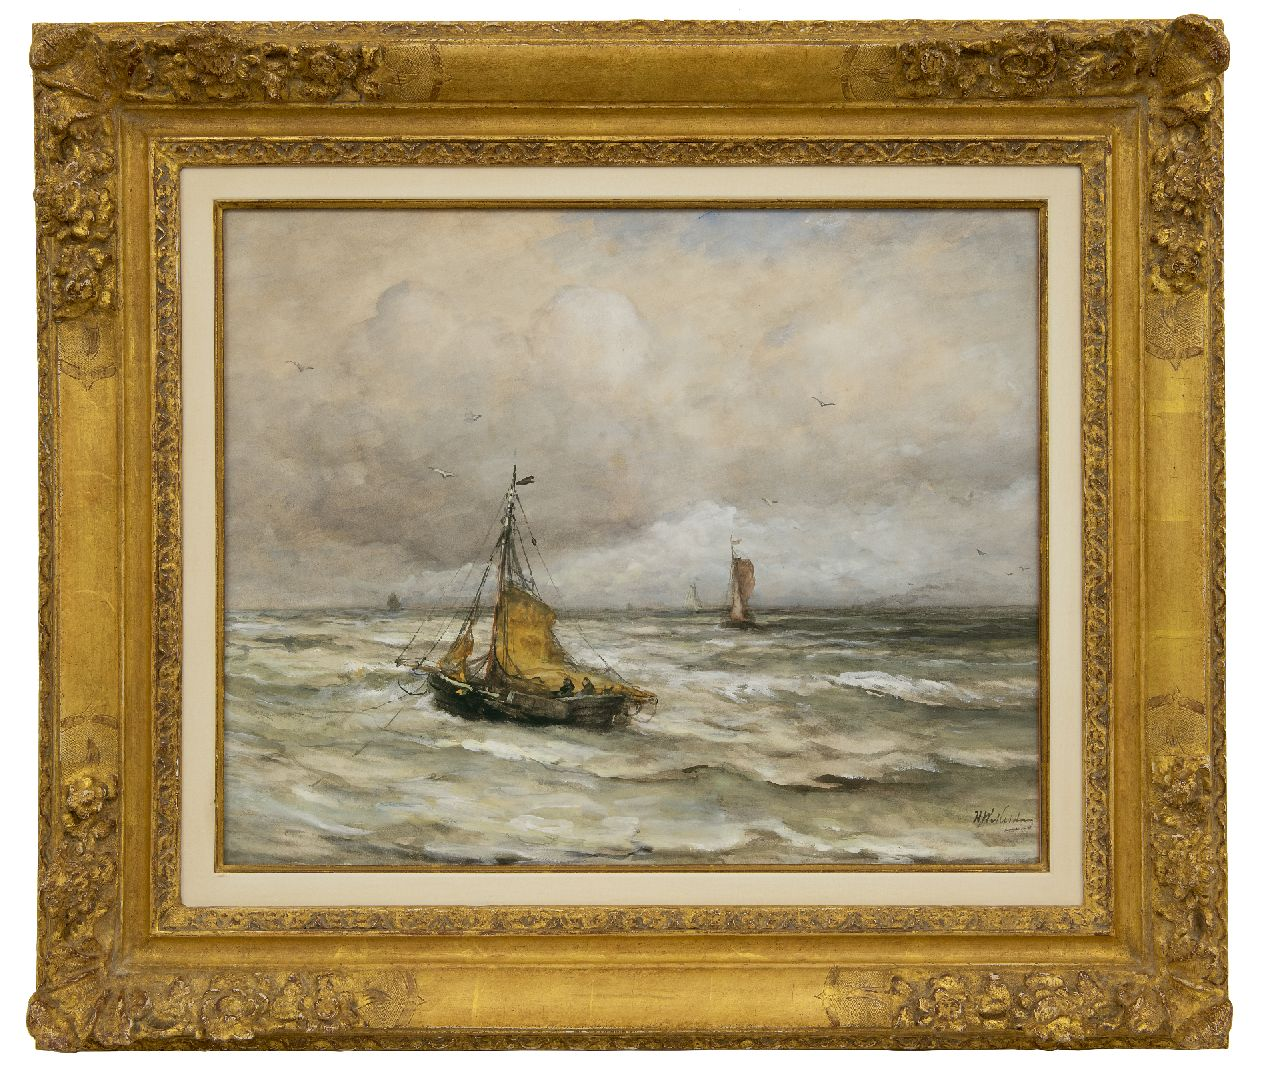 Mesdag H.W.  | Hendrik Willem Mesdag | Watercolours and drawings offered for sale | At anchor in the surf, watercolour and gouache on paper 44.5 x 55.4 cm, signed l.r.